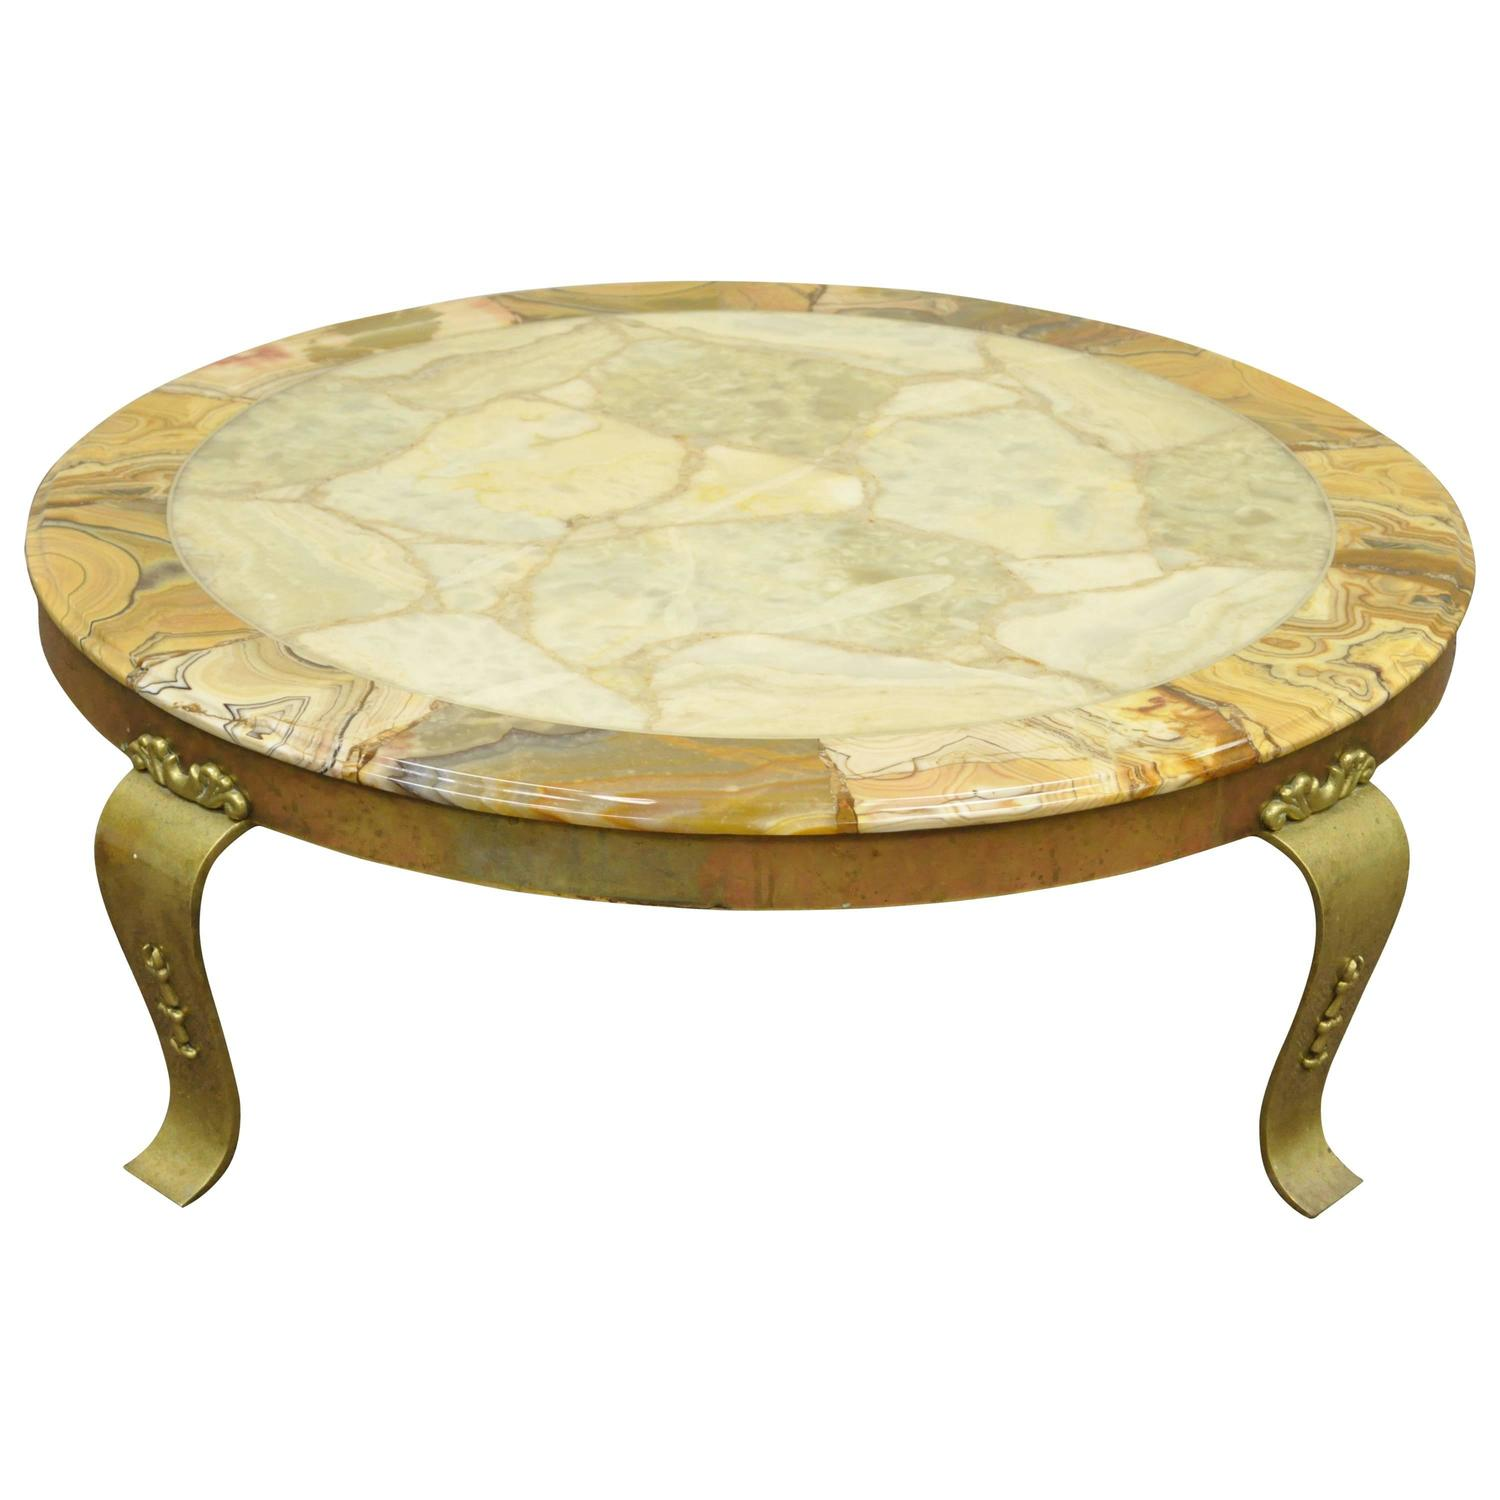 solid brass and onyx round coffee table by muller attributed to arturo pani for sale at 1stdibs. Black Bedroom Furniture Sets. Home Design Ideas